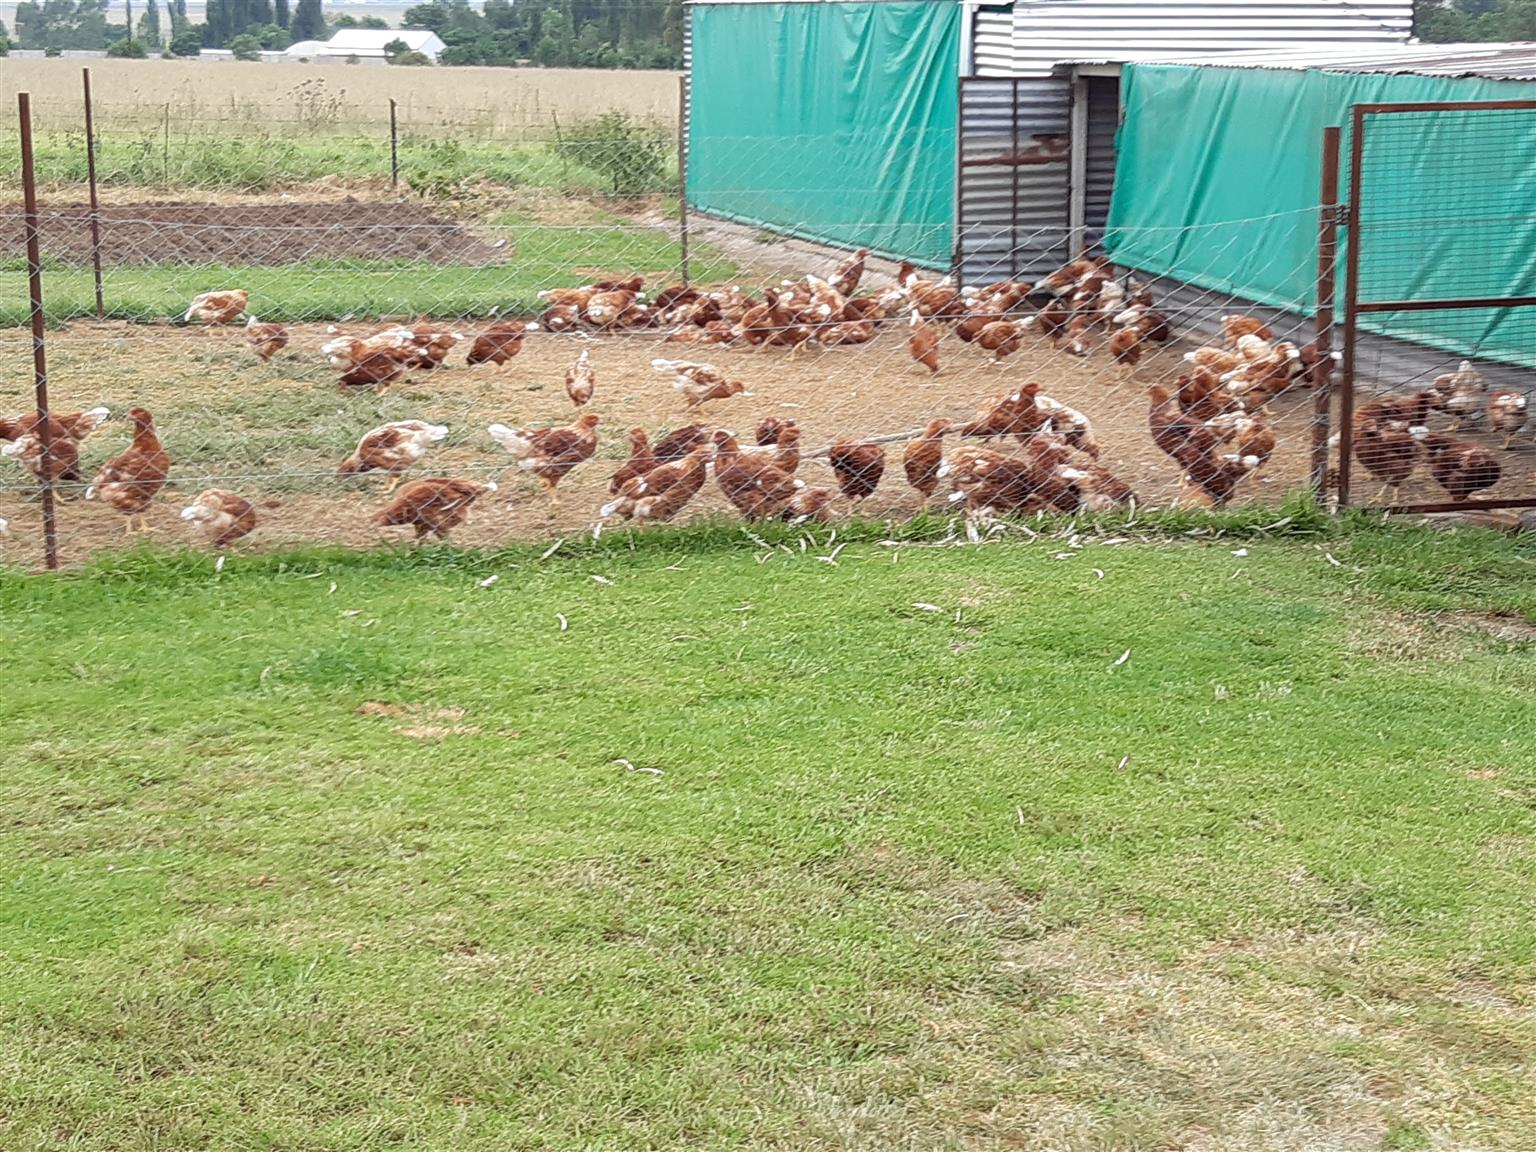 POINT OF LAY READY ON 10 FEB. VACCINATED. LOHMANN BROWN 20 WEEKS OLD NEW HEN`S